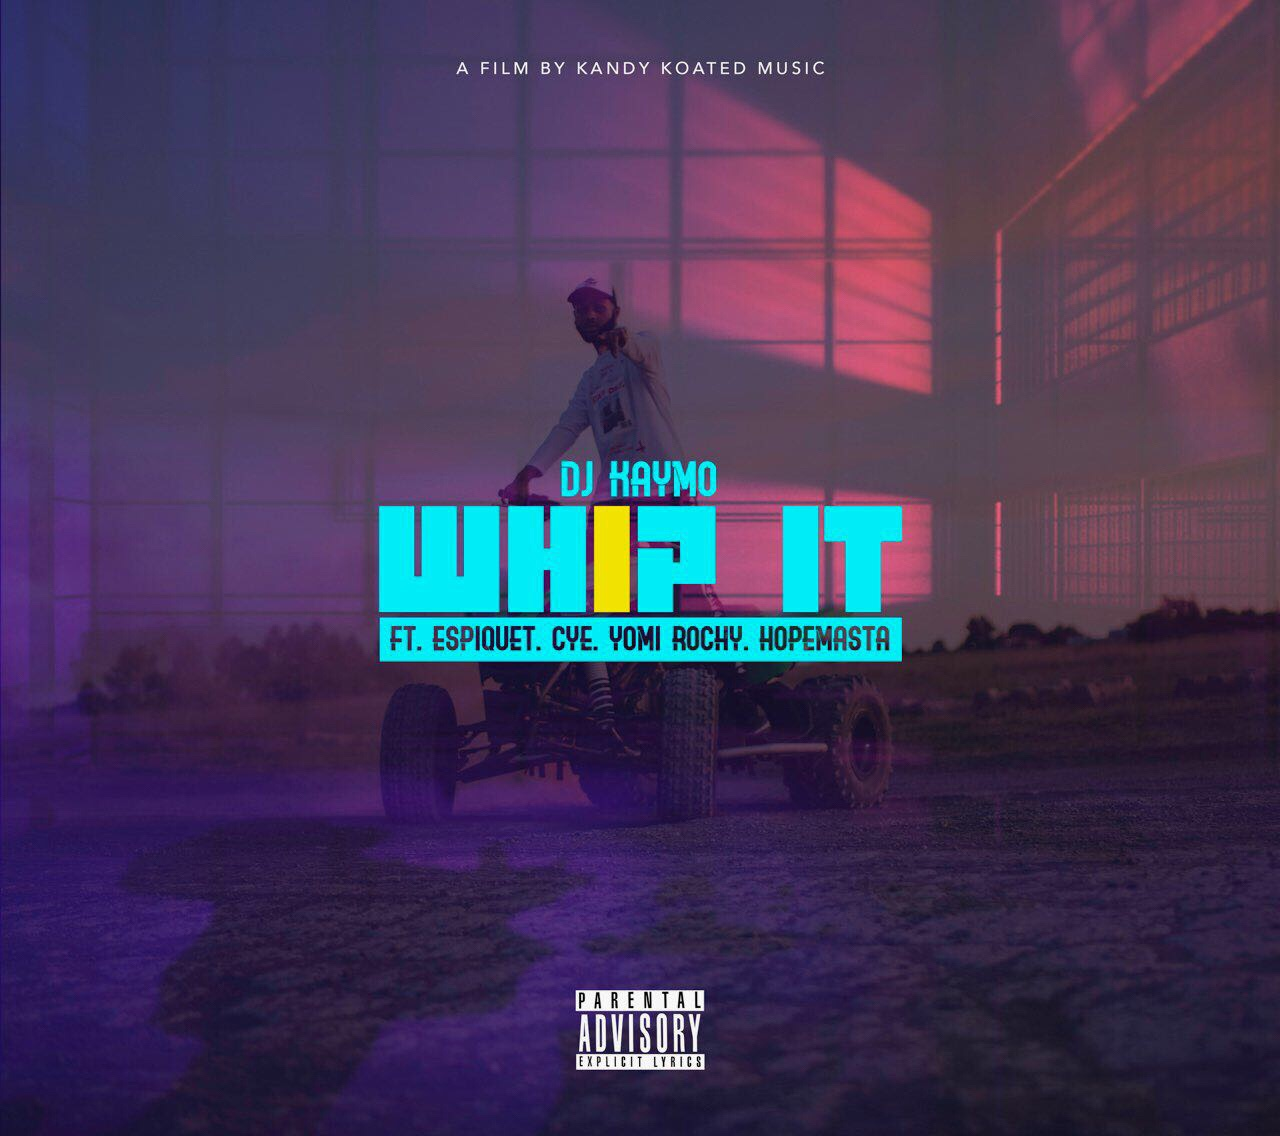 DJ Kaymo Drops New ' Whip It' Music Video Ft. Espiquet , Hopemasta, Cye & Yomi Rochy [Watch] 9130bbda 8a00 4873 99ef 0ce3d53dfcbc